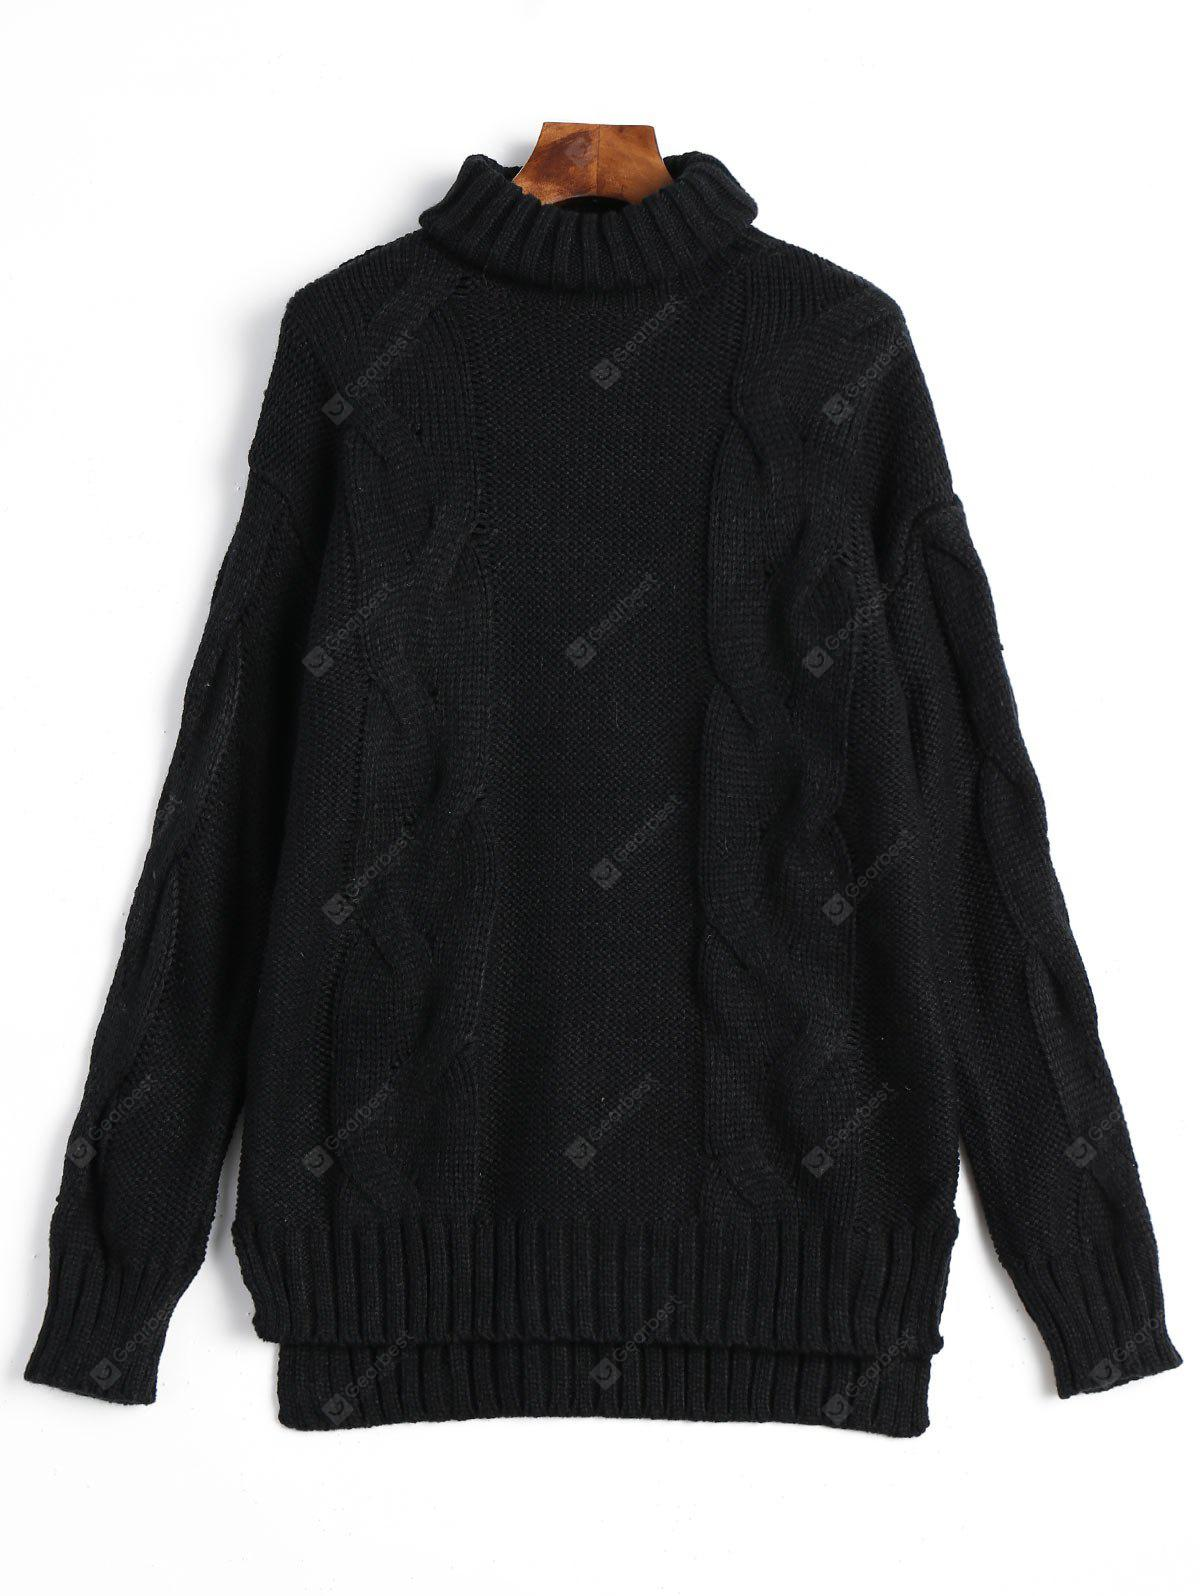 Slit Cable Knitted Turtleneck Sweater